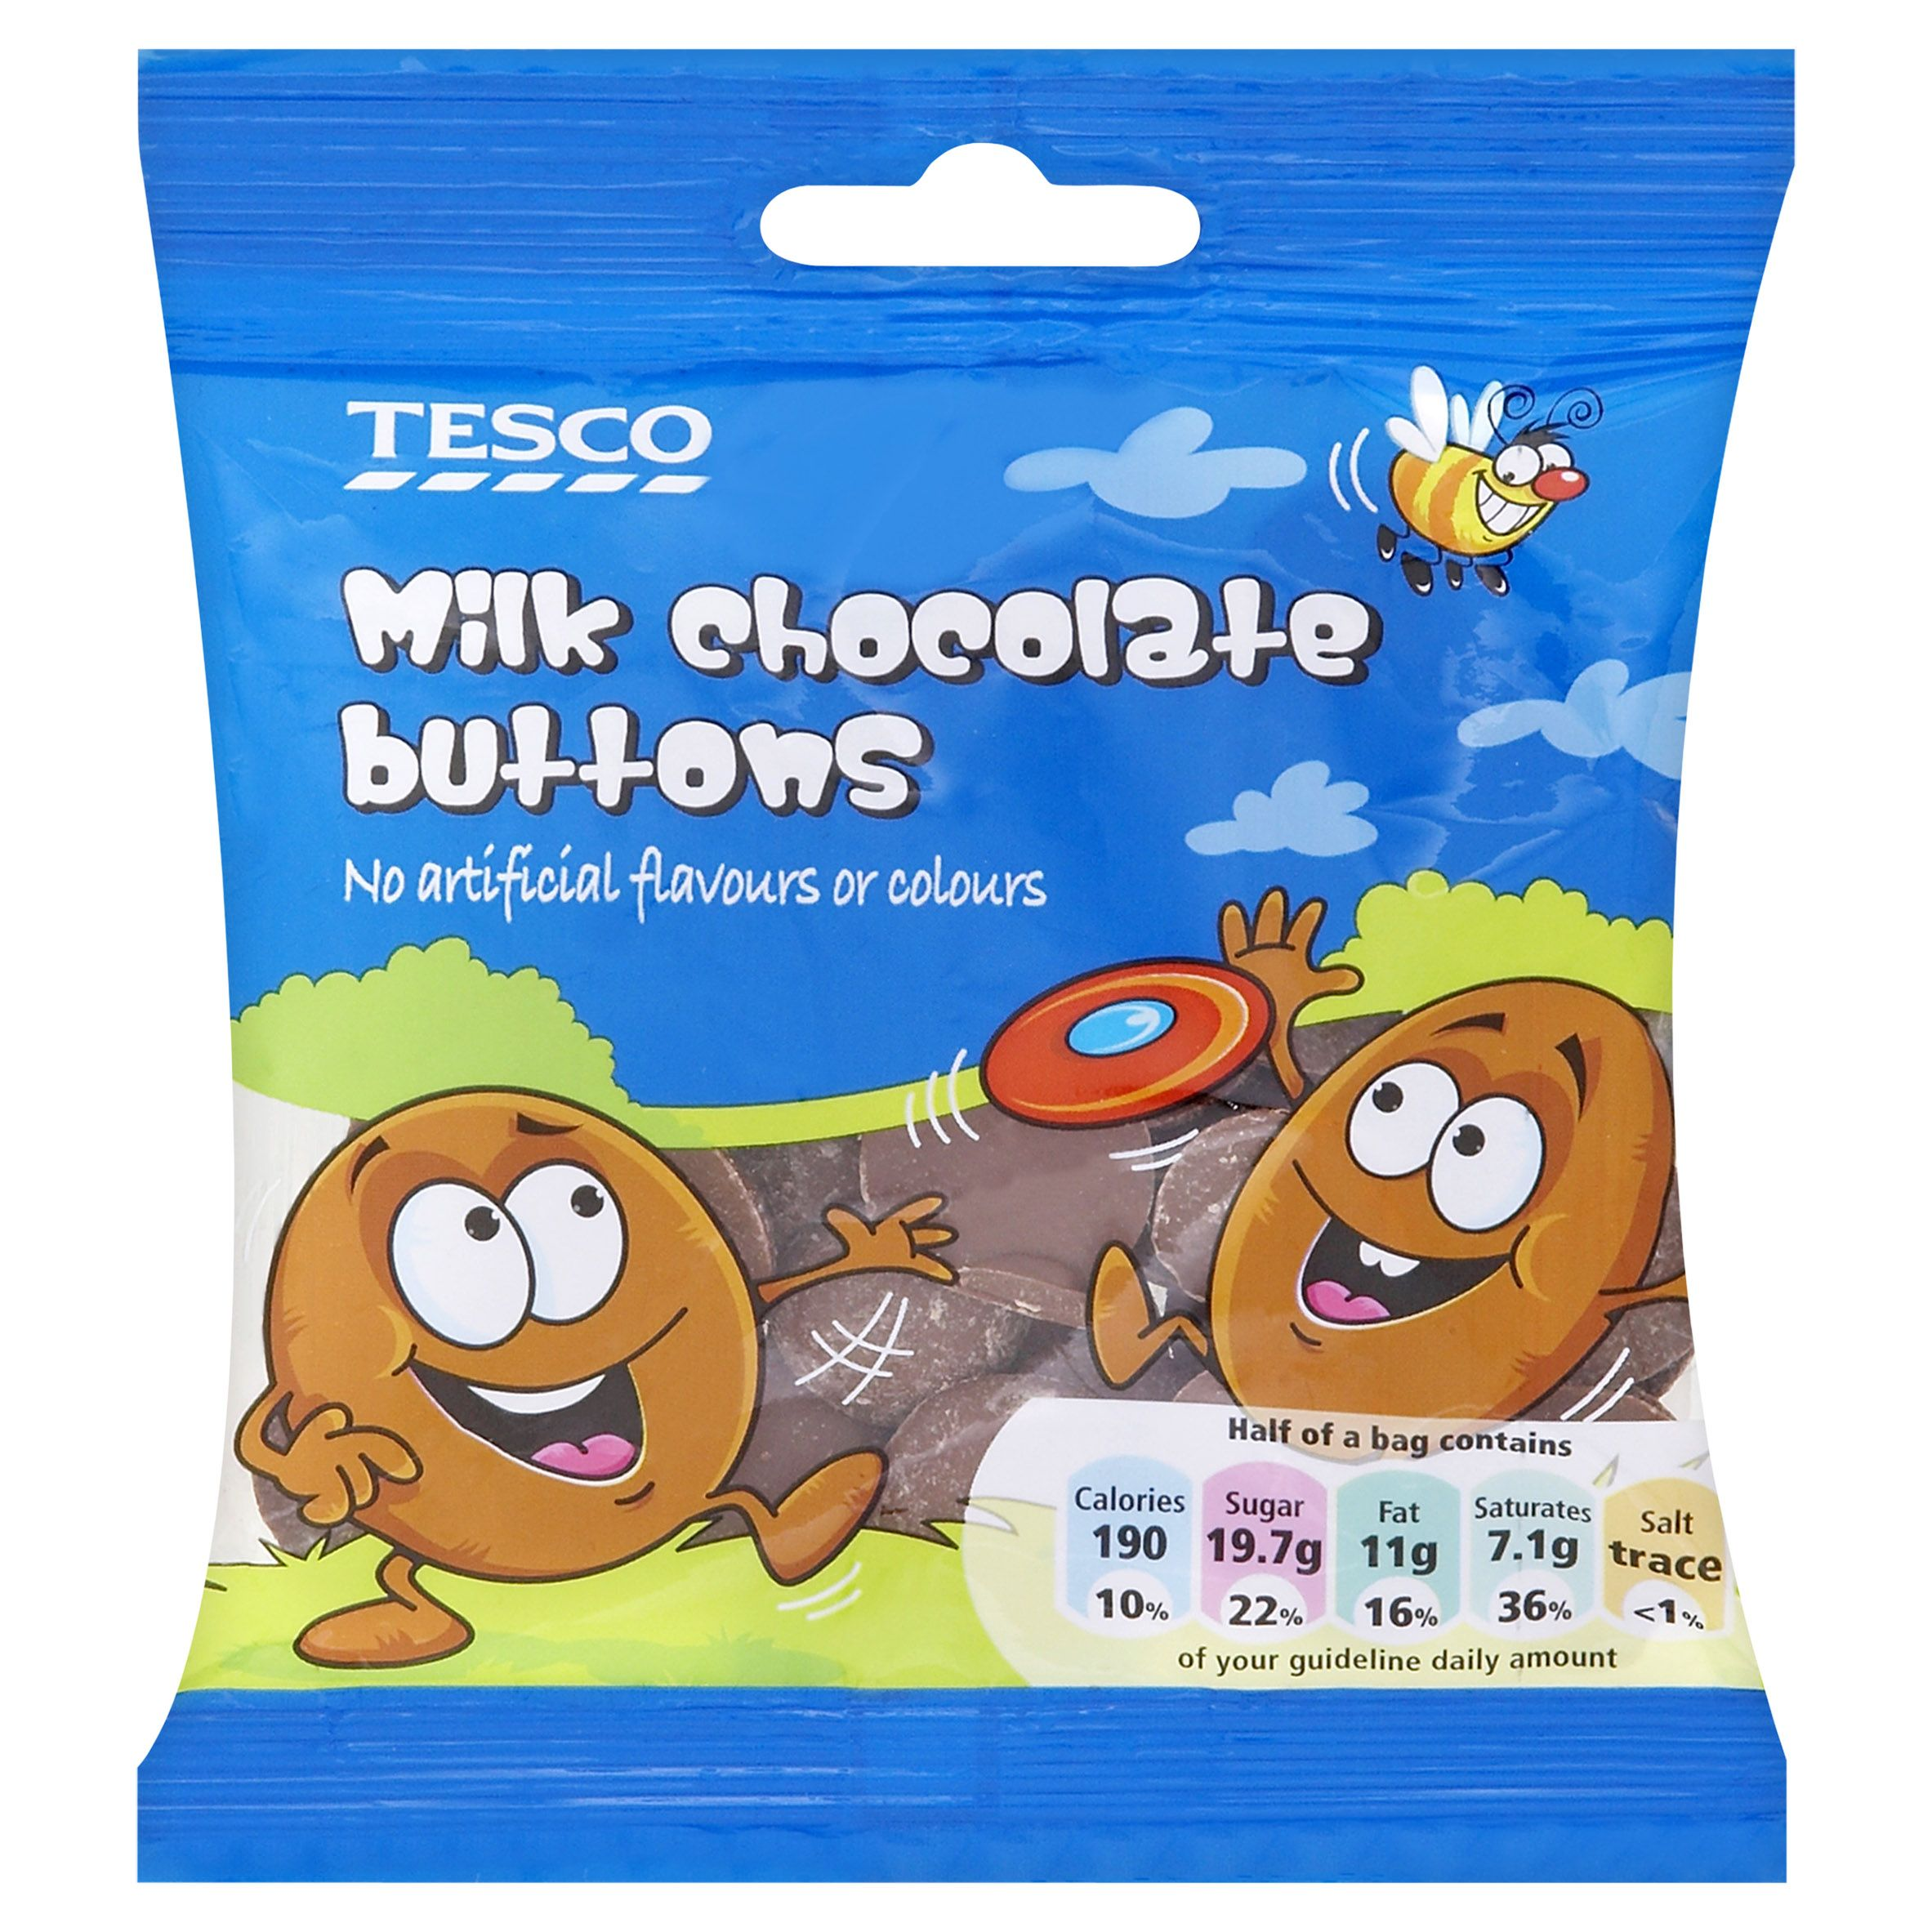 Tesco Milk Chocolate Buttons No Artificial Flavours Or Colours